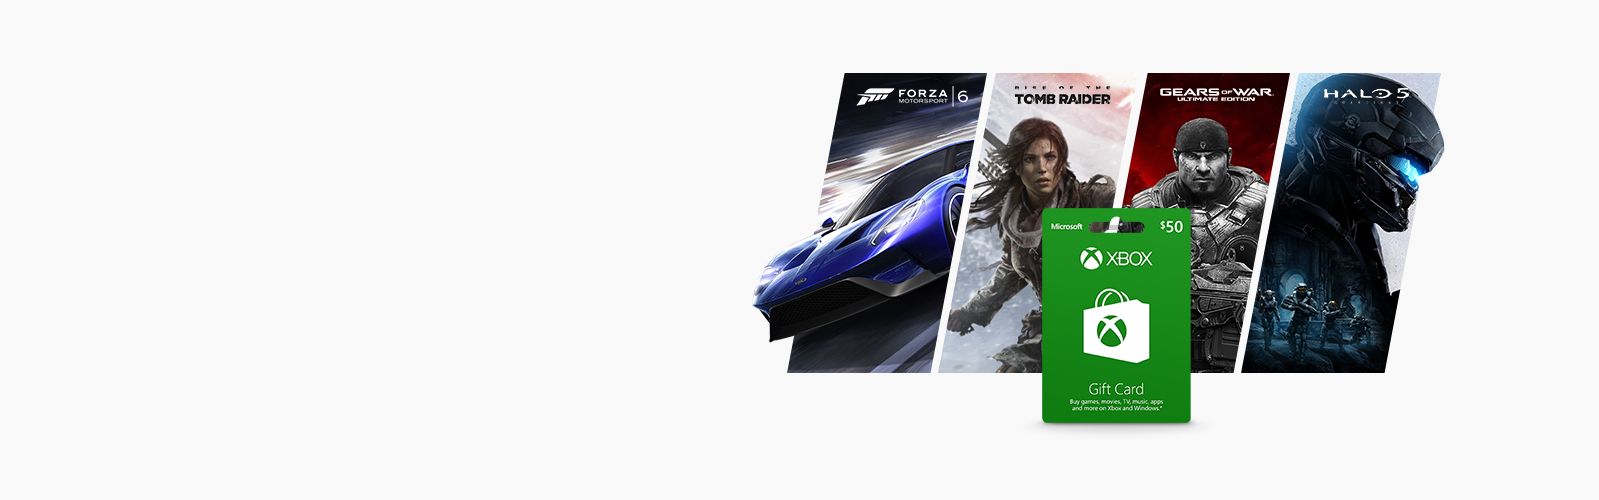 gift cards xbox gift cards windows gift cards xbox gift cards xbox gift cards